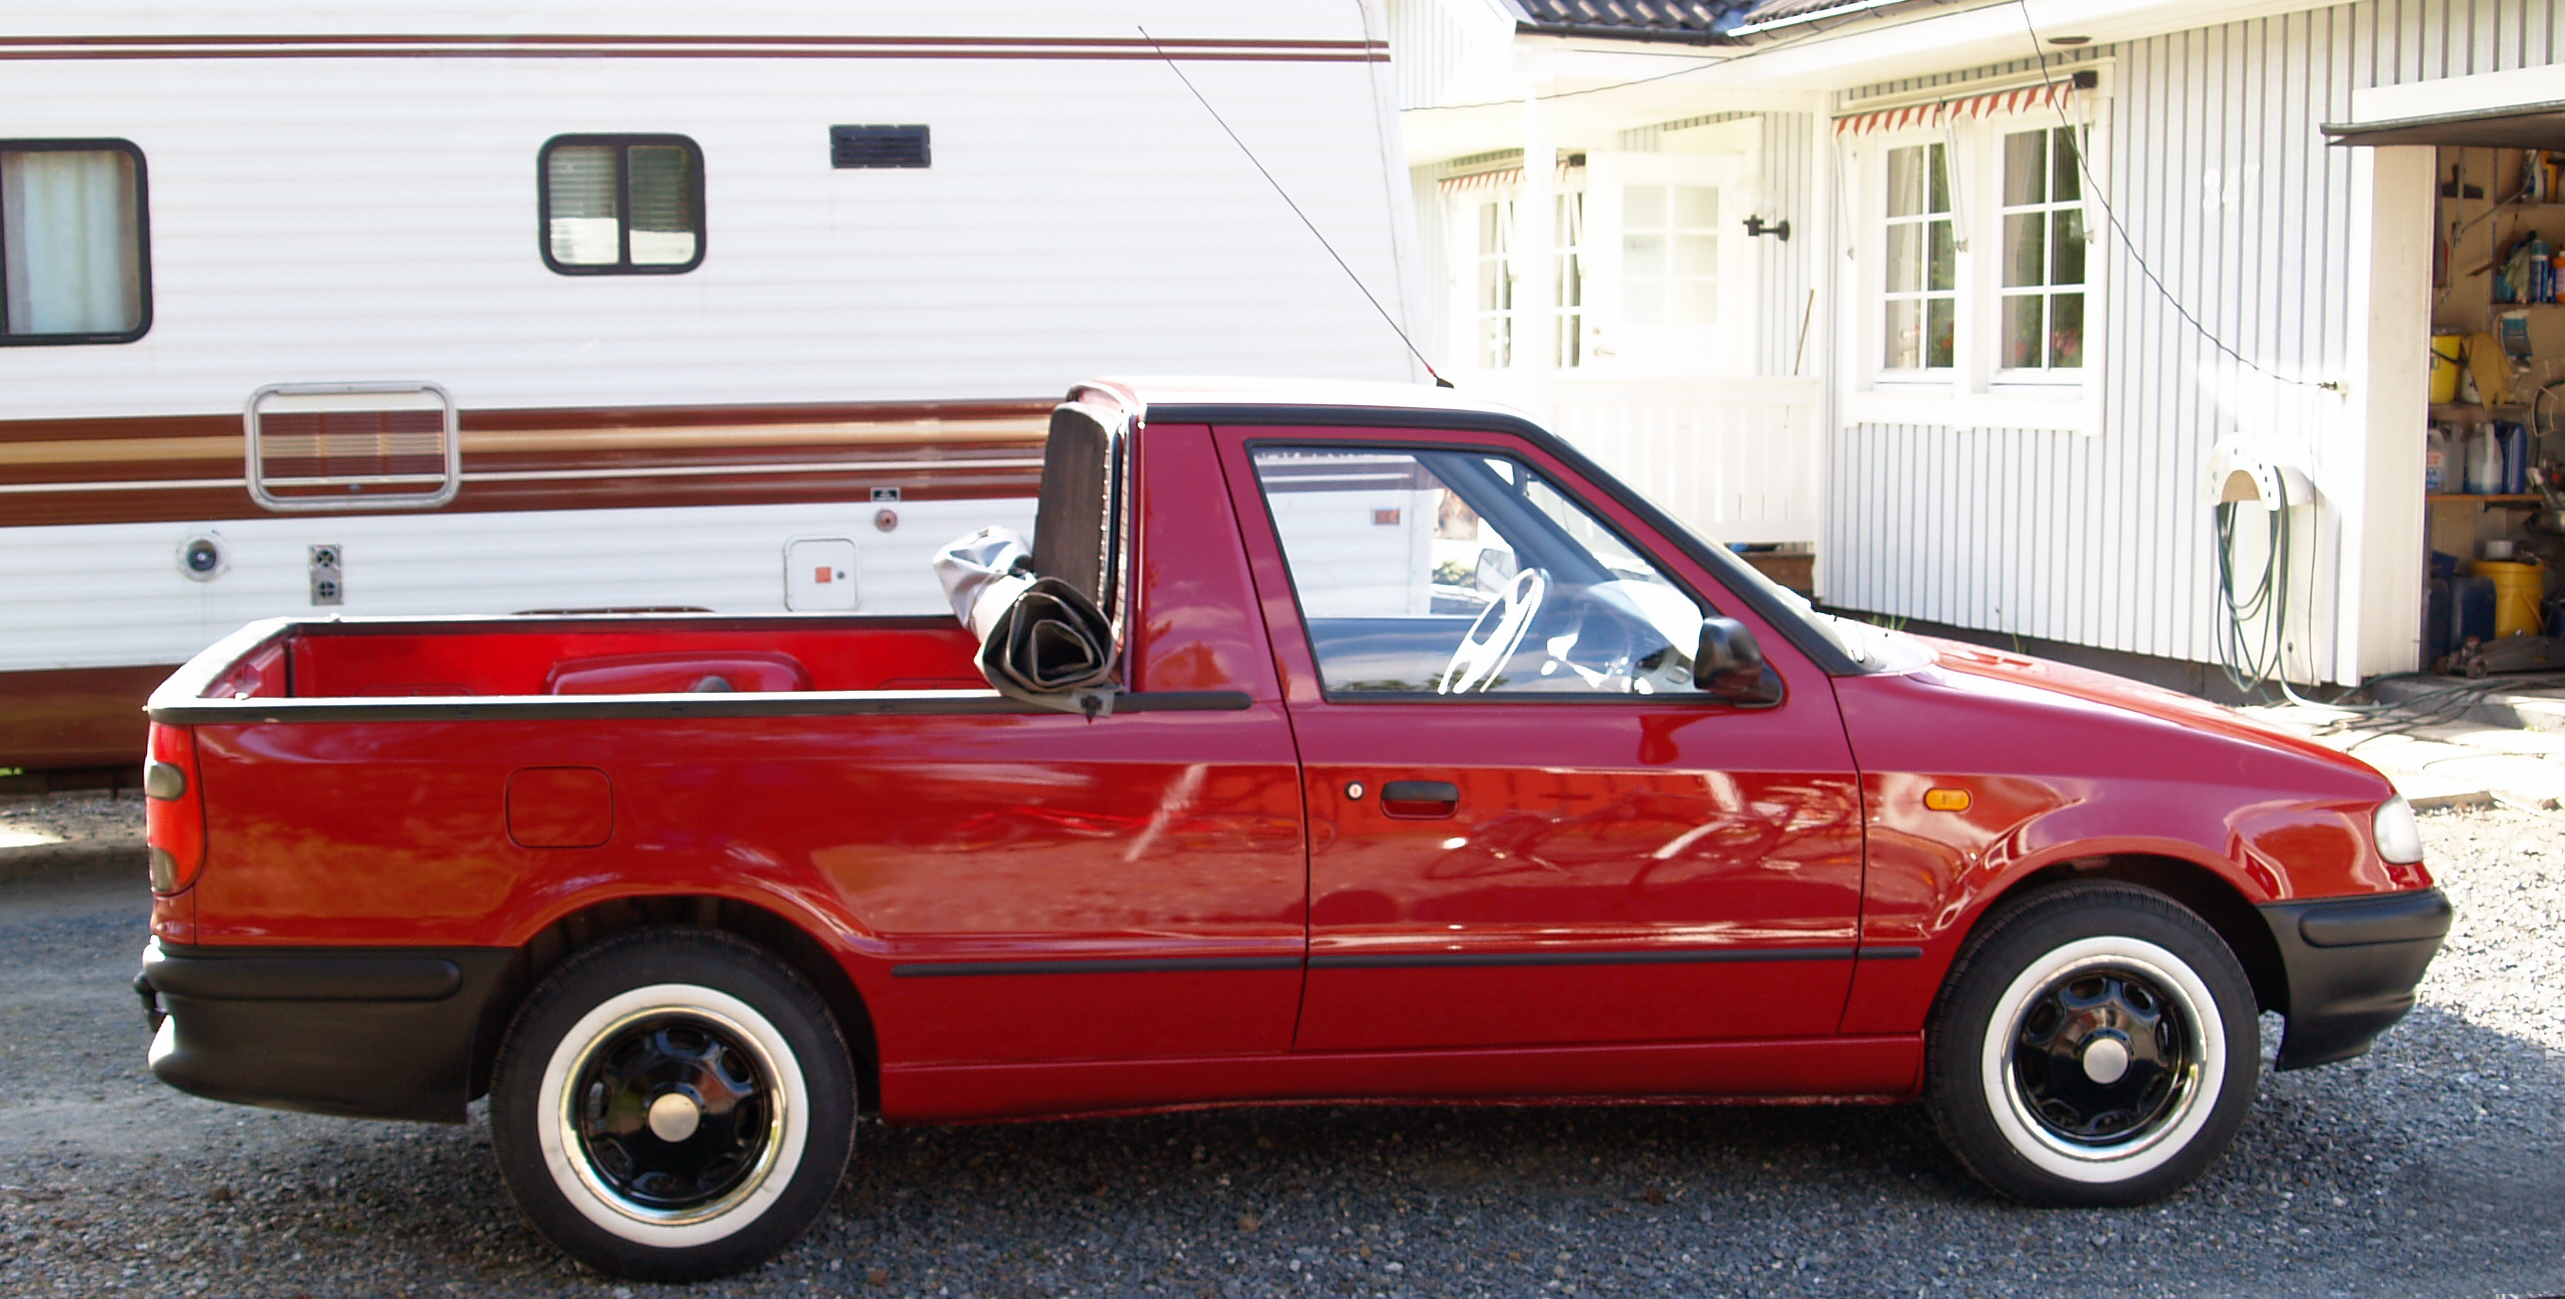 VW Caddy Pickup Truck for Sale